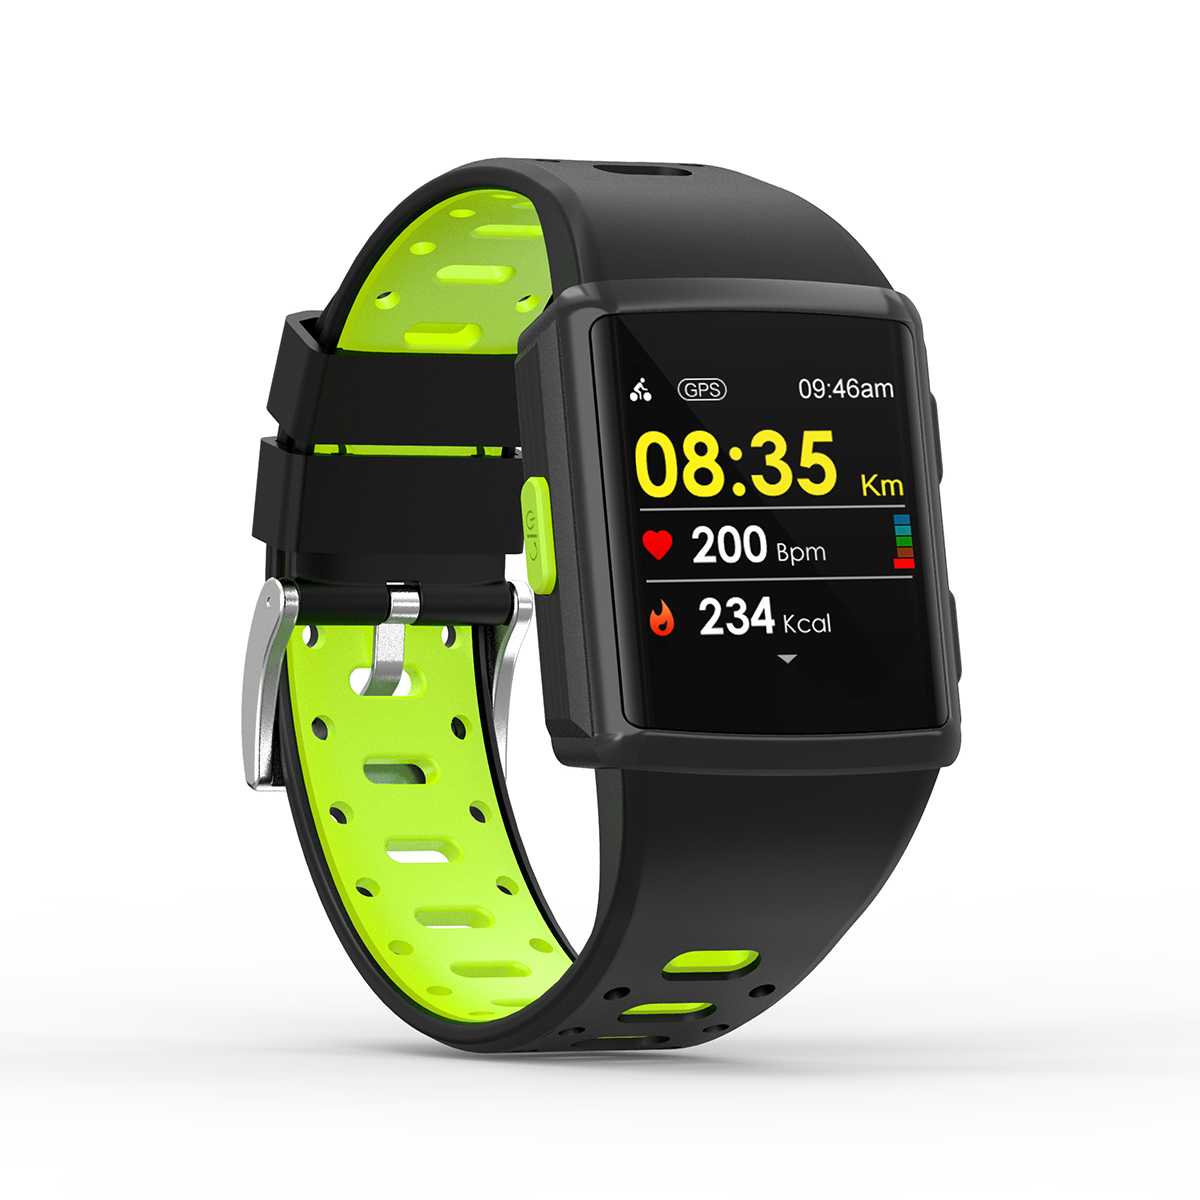 smart watch in 2019 with find phone IP68 waterproof activity tracking call notification multi motion